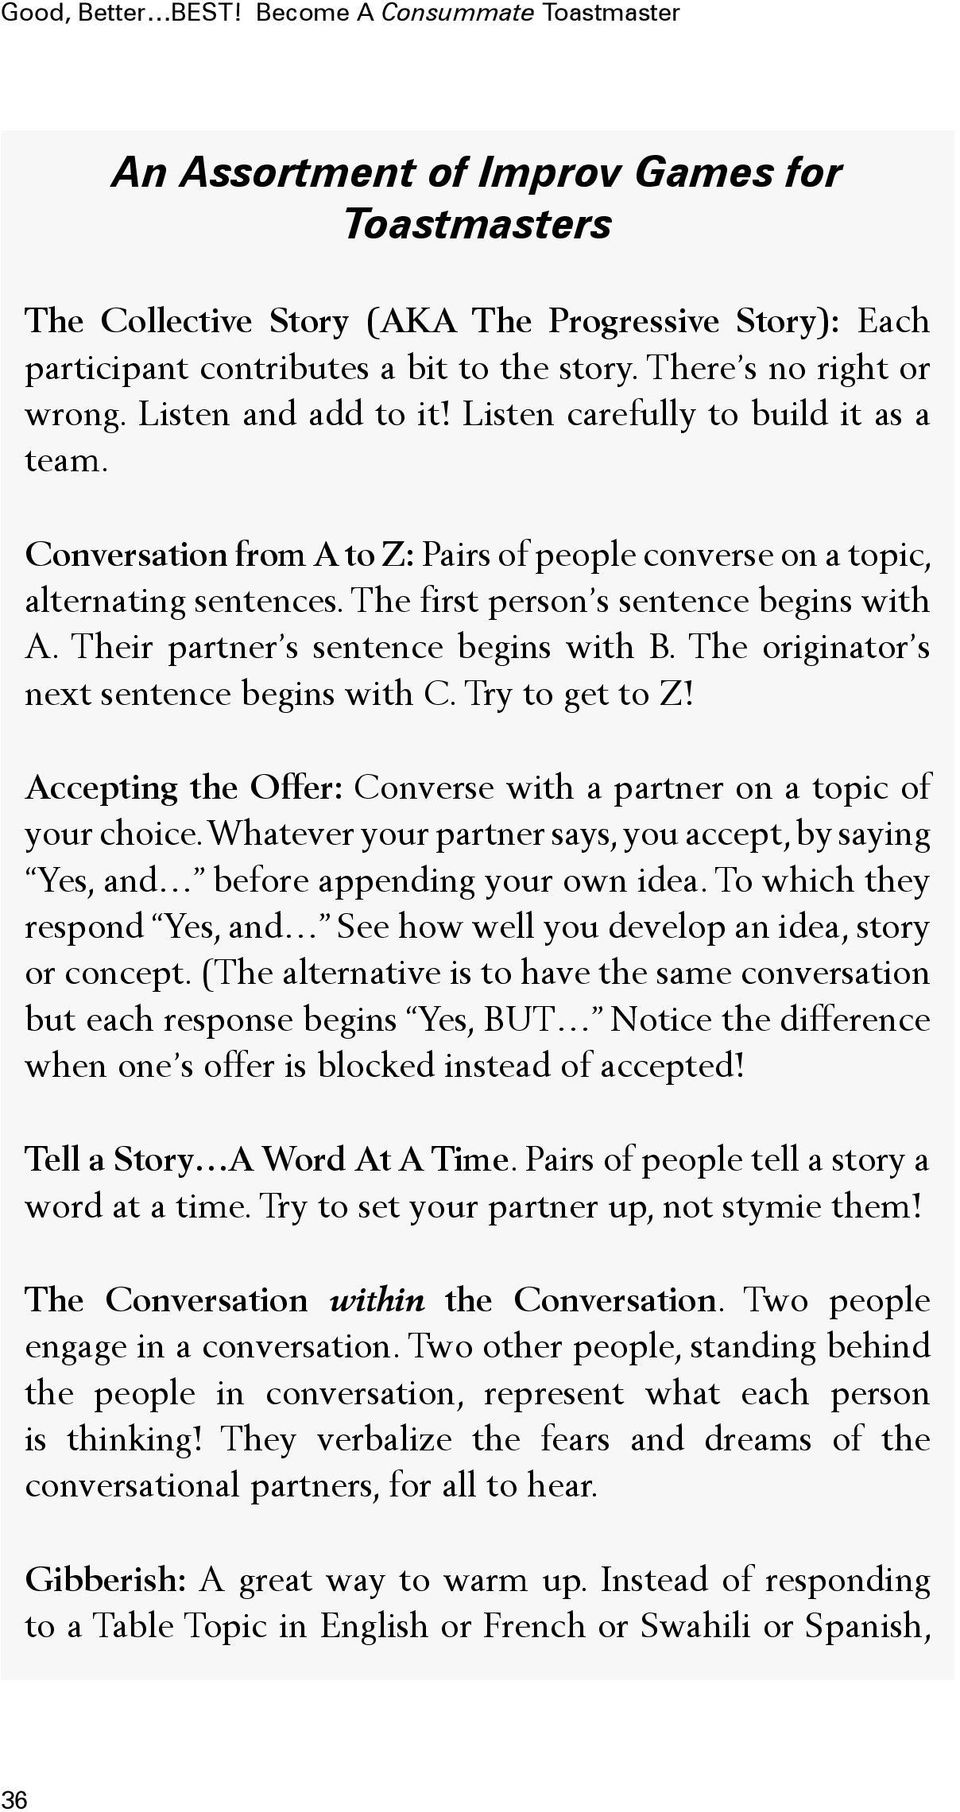 The first person s sentence begins with A. Their partner s sentence begins with B. The originator s next sentence begins with C. Try to get to Z!